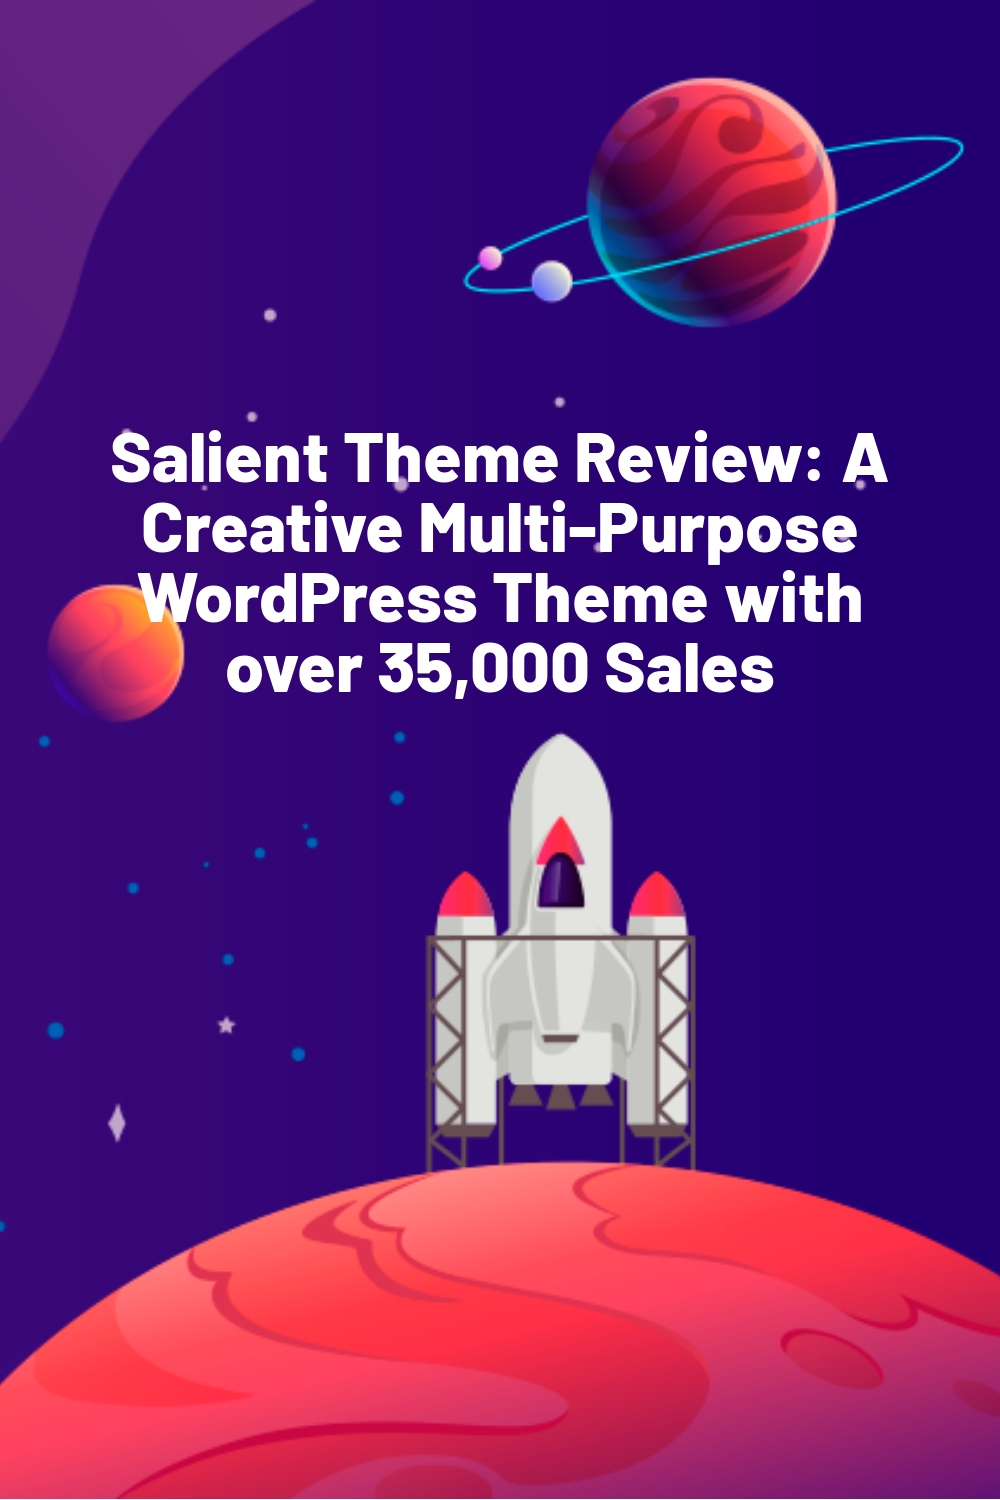 Salient Theme Review: A Creative Multi-Purpose WordPress Theme with over 35,000 Sales